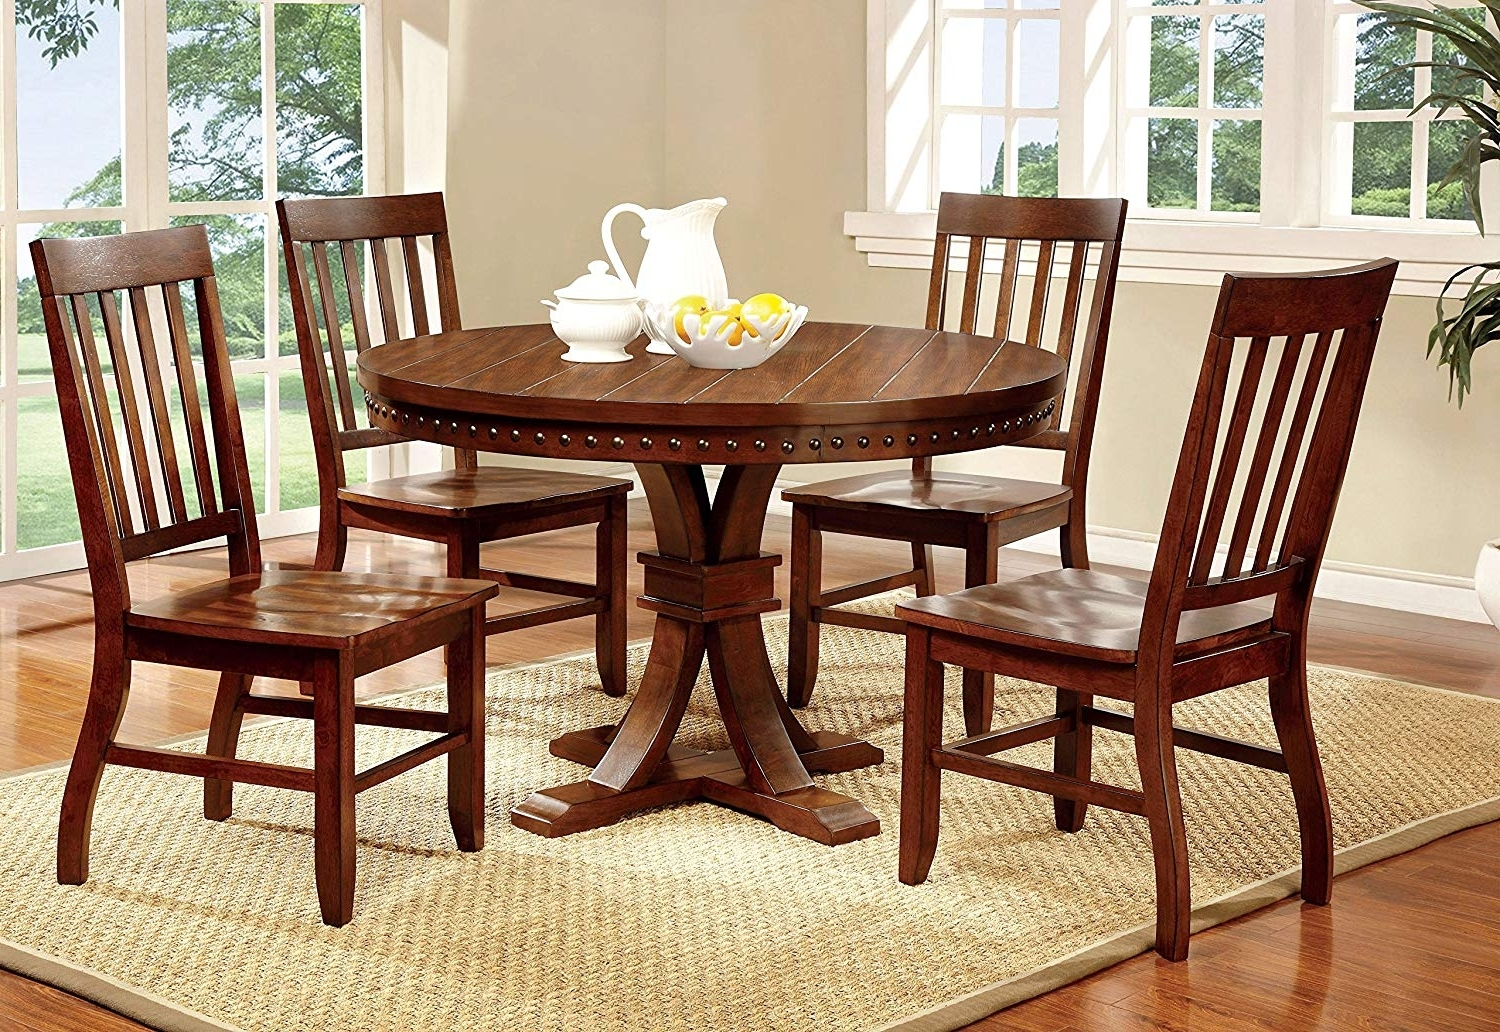 Amazon – Furniture Of America Castile 5 Piece Transitional Round With Regard To Recent Cheap Round Dining Tables (Gallery 22 of 25)